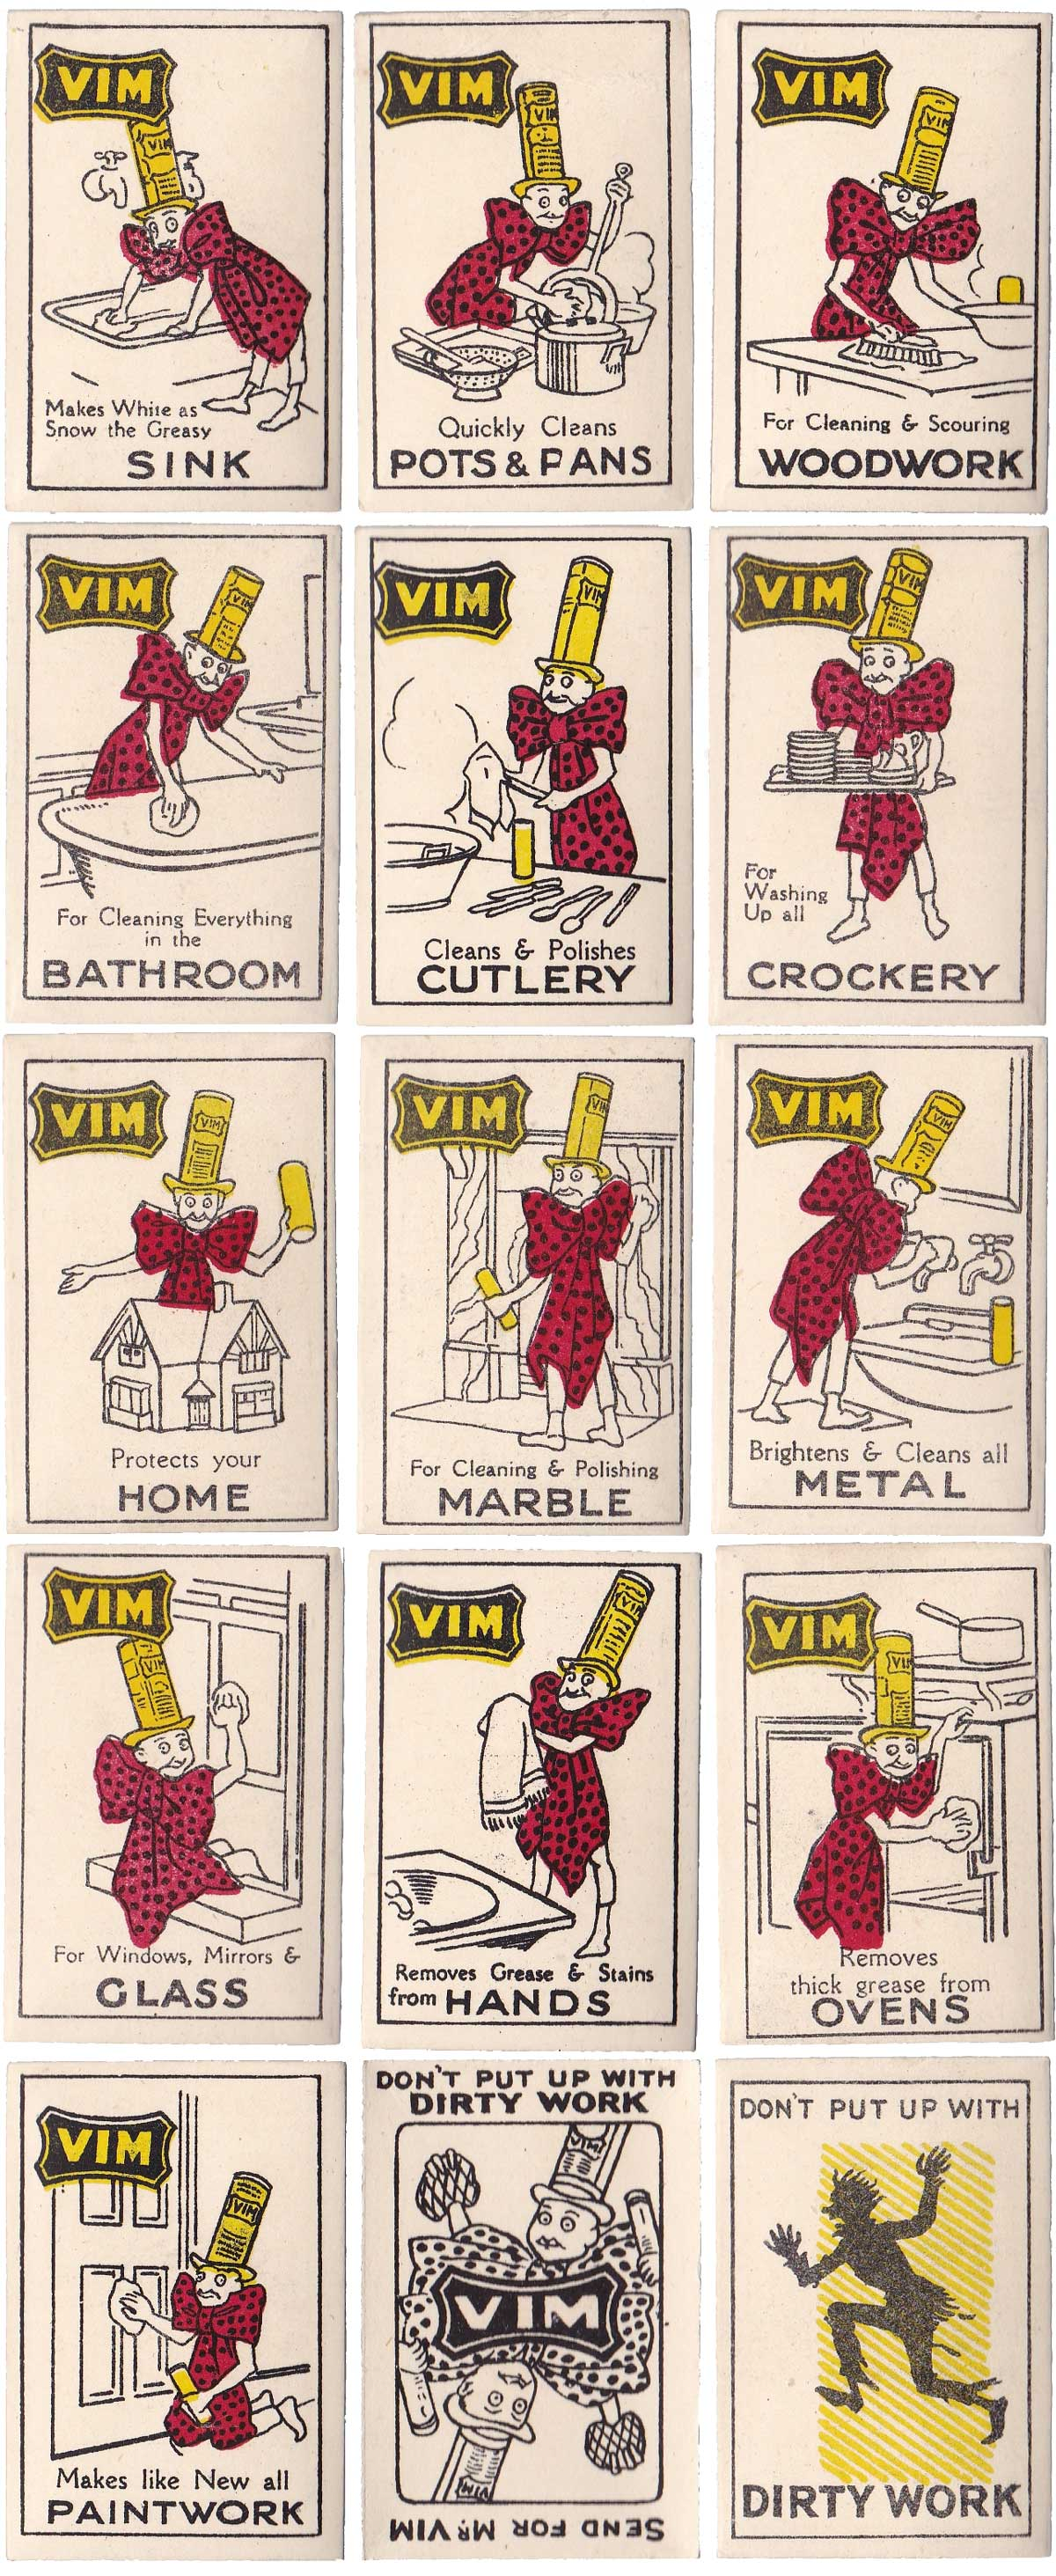 Lever Brothers miniature card game promoting Vim, 1930s